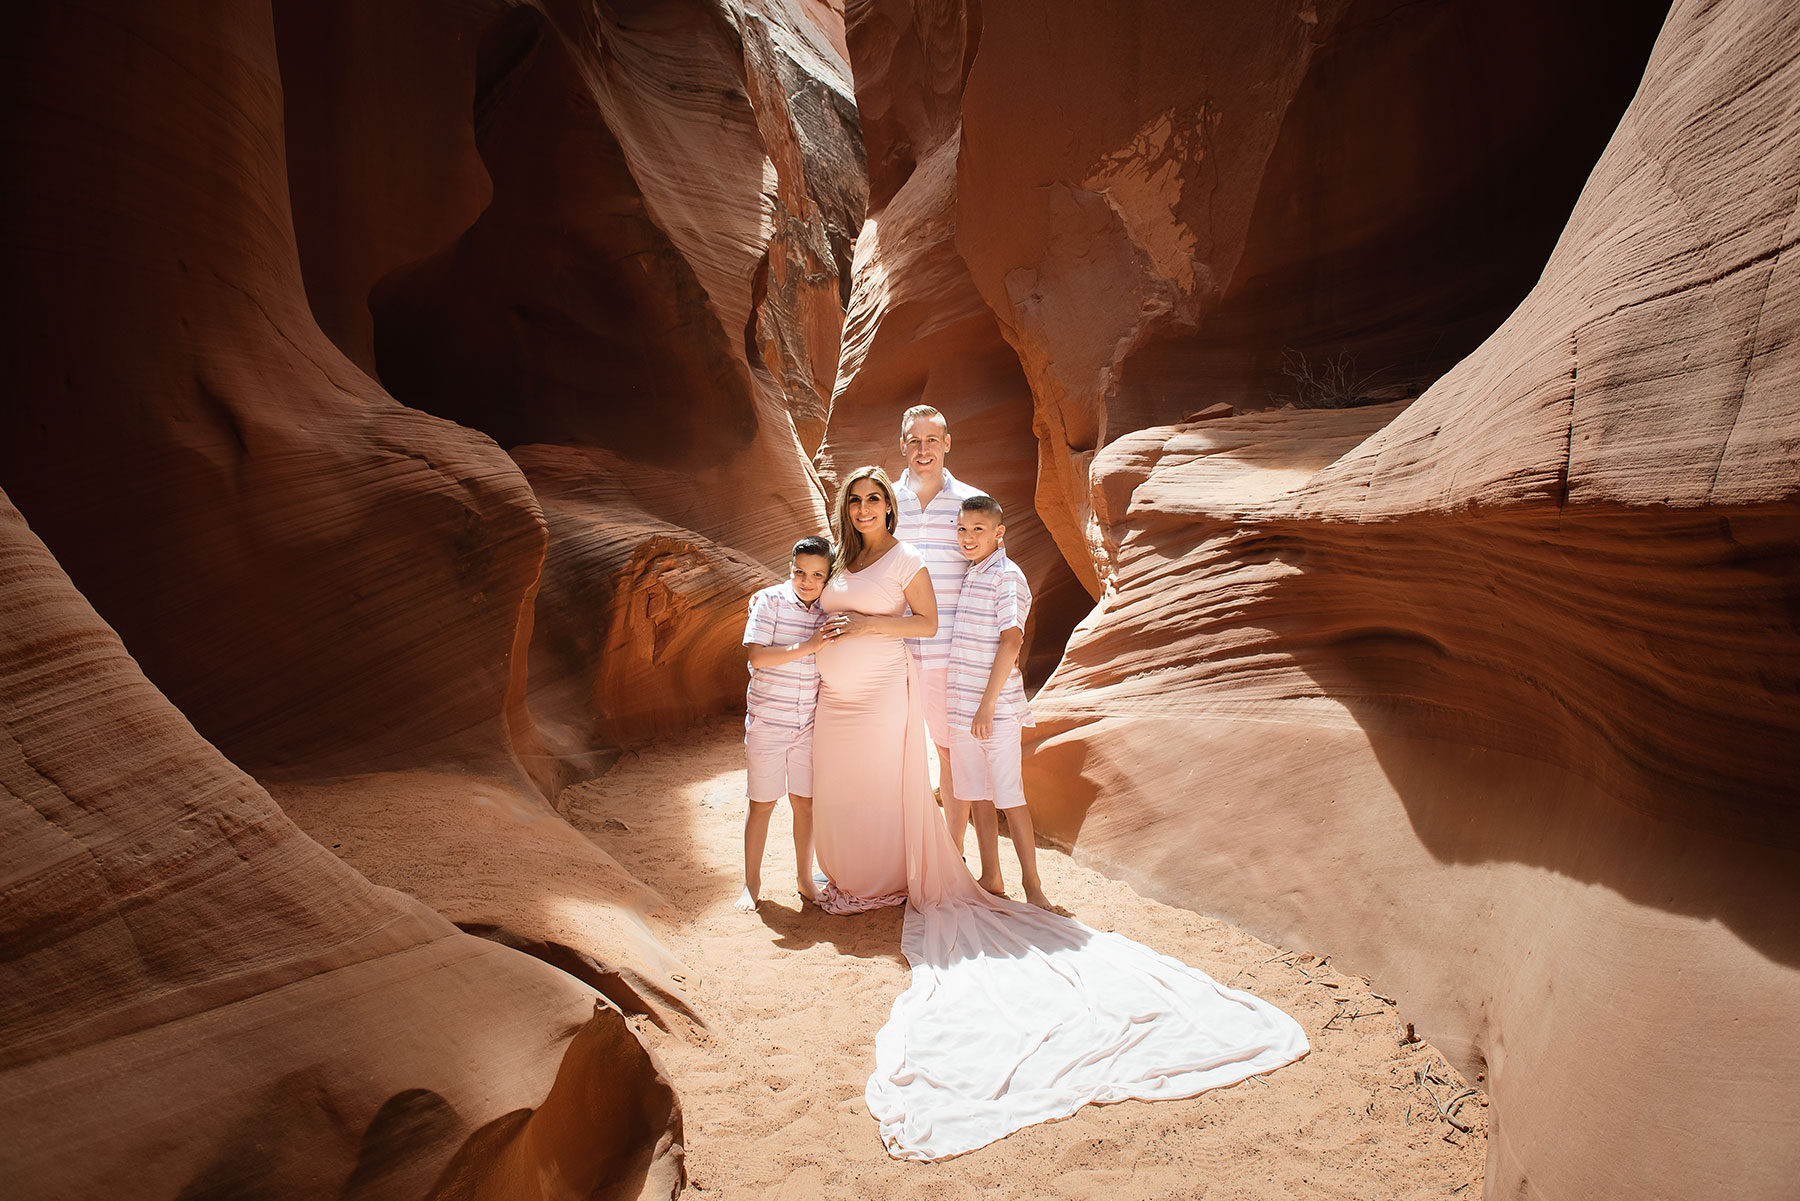 Slot-Canyon-Family-Portraits-13